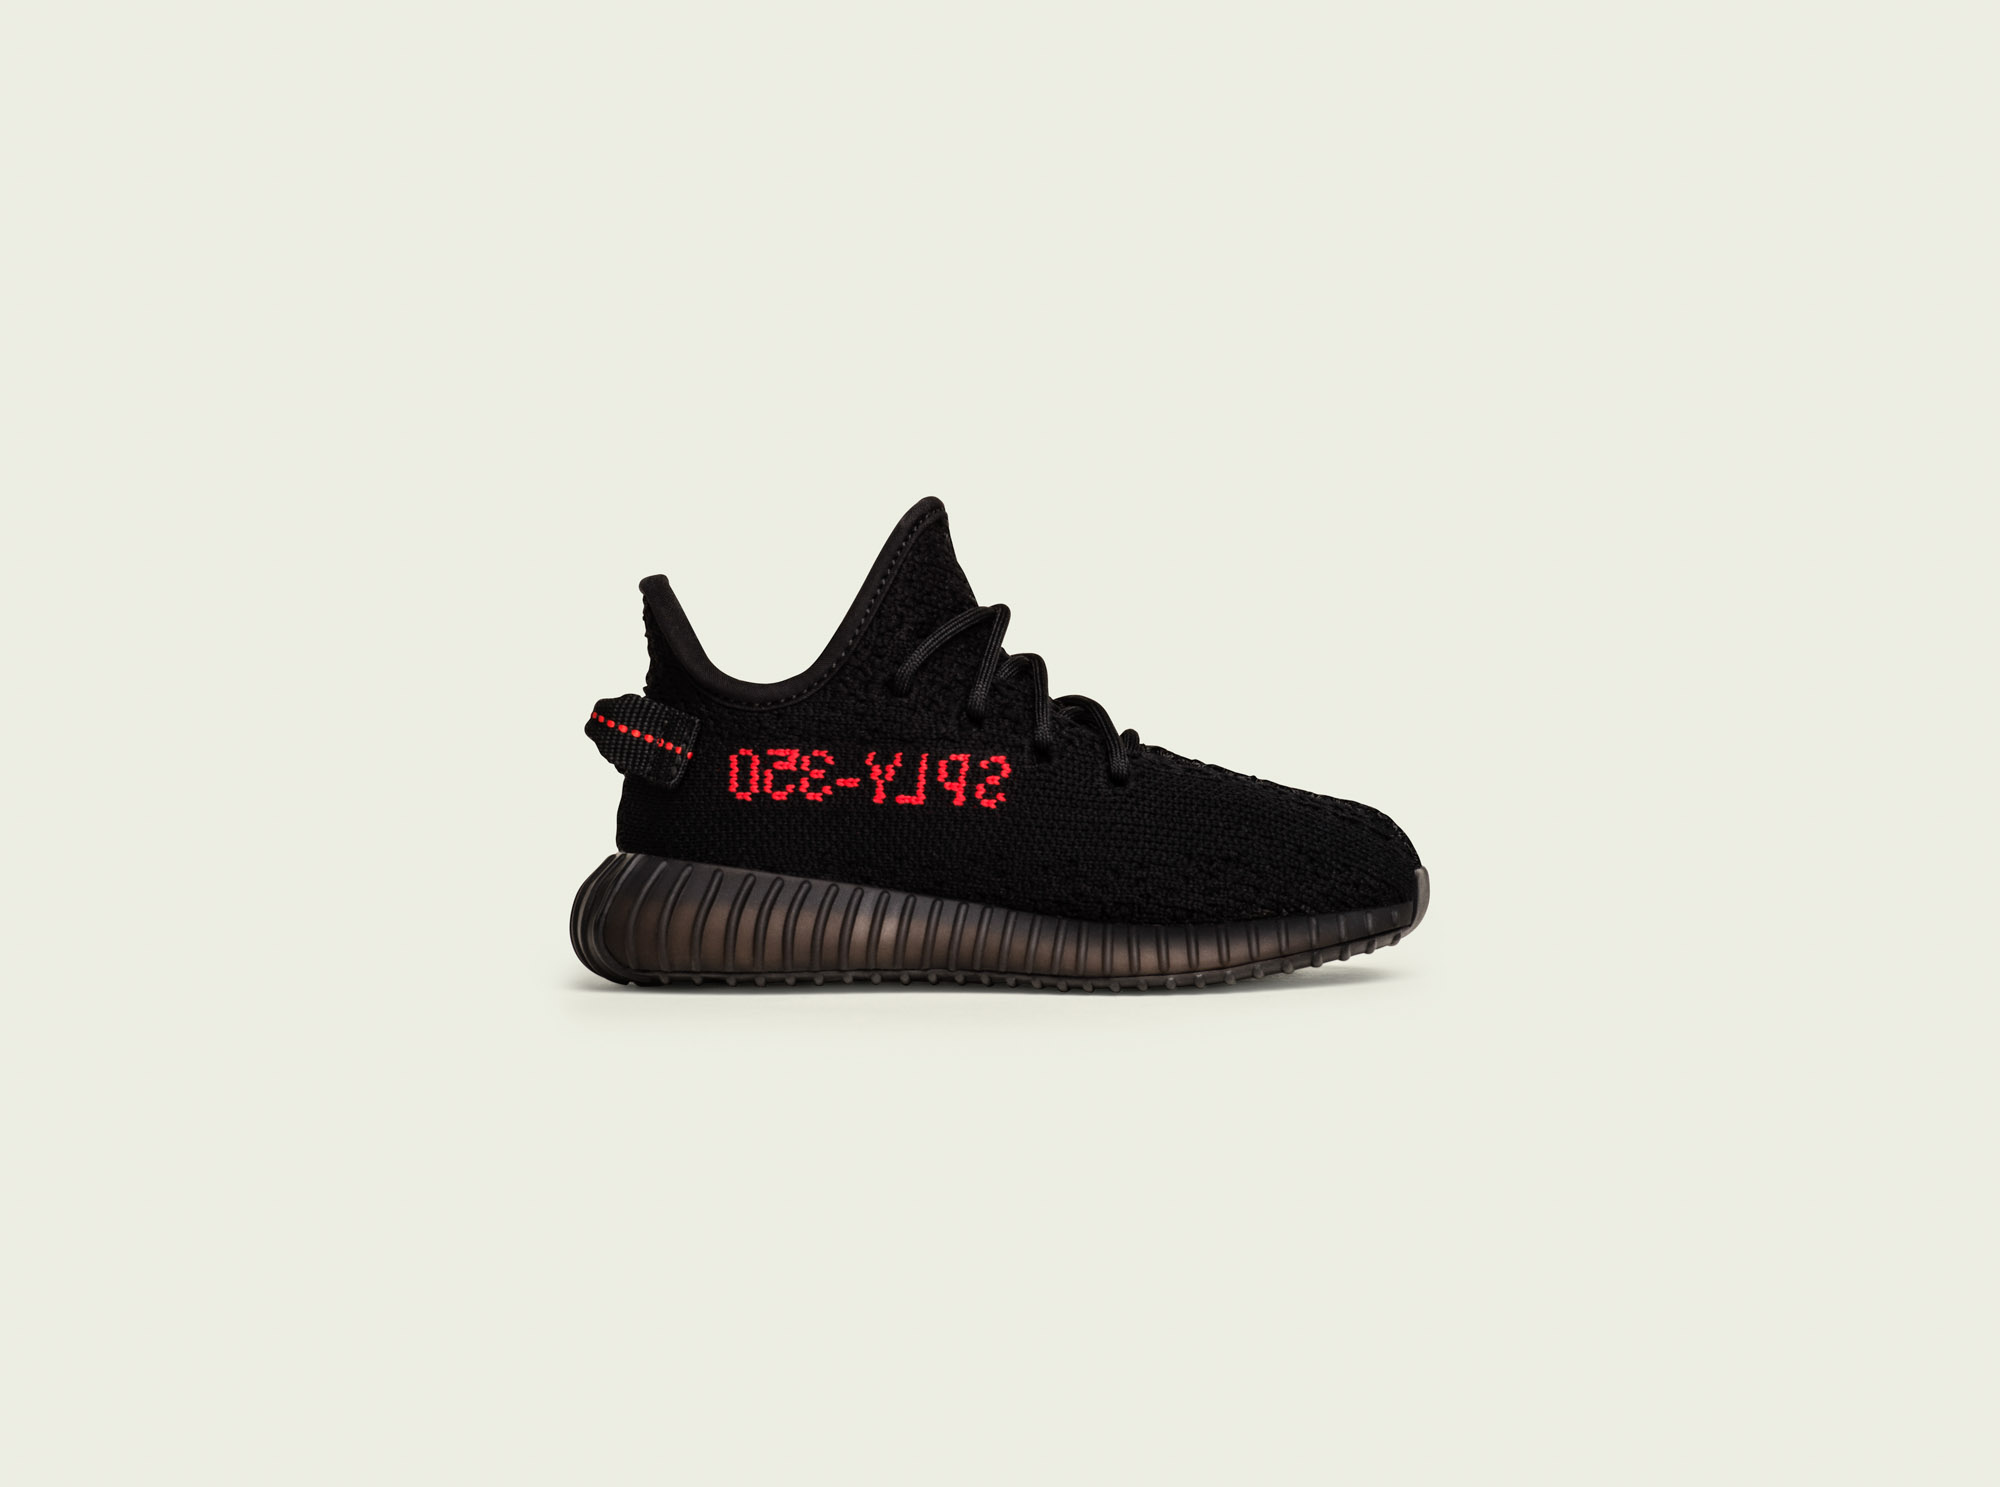 ADIDAS YEEZY BOOST 350 v2 CP 965 BRED BLACK / RED SIZE 5